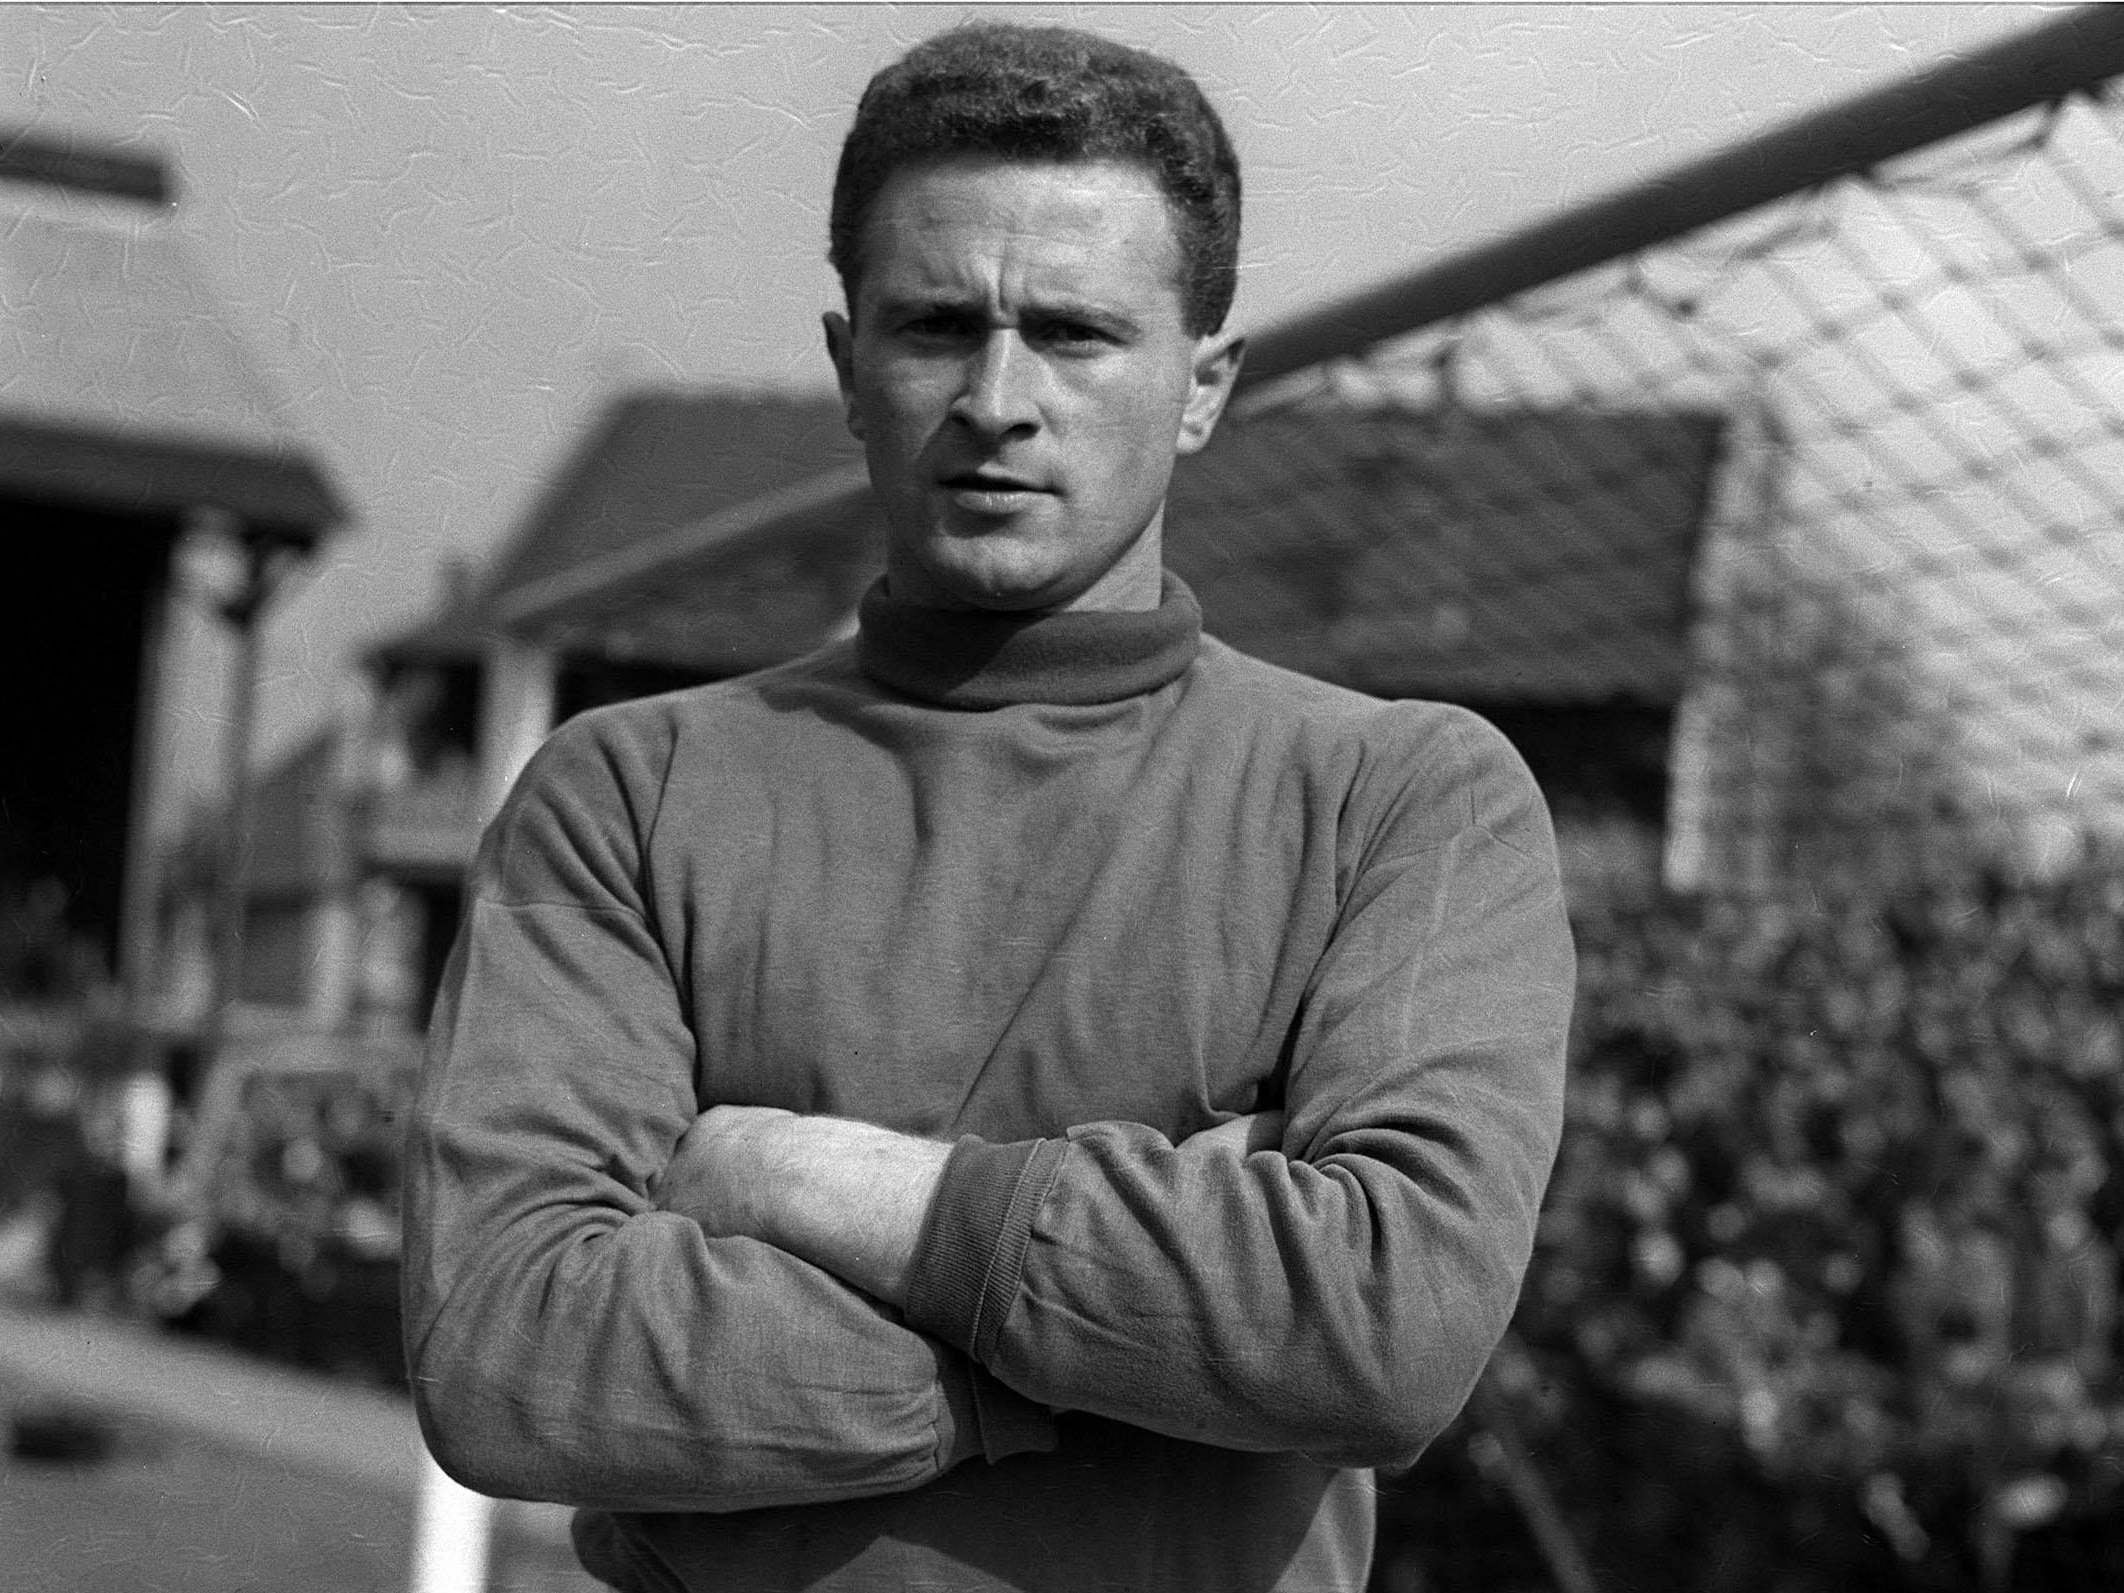 Harry Gregg obituary: the reluctant hero of the Munich air disaster